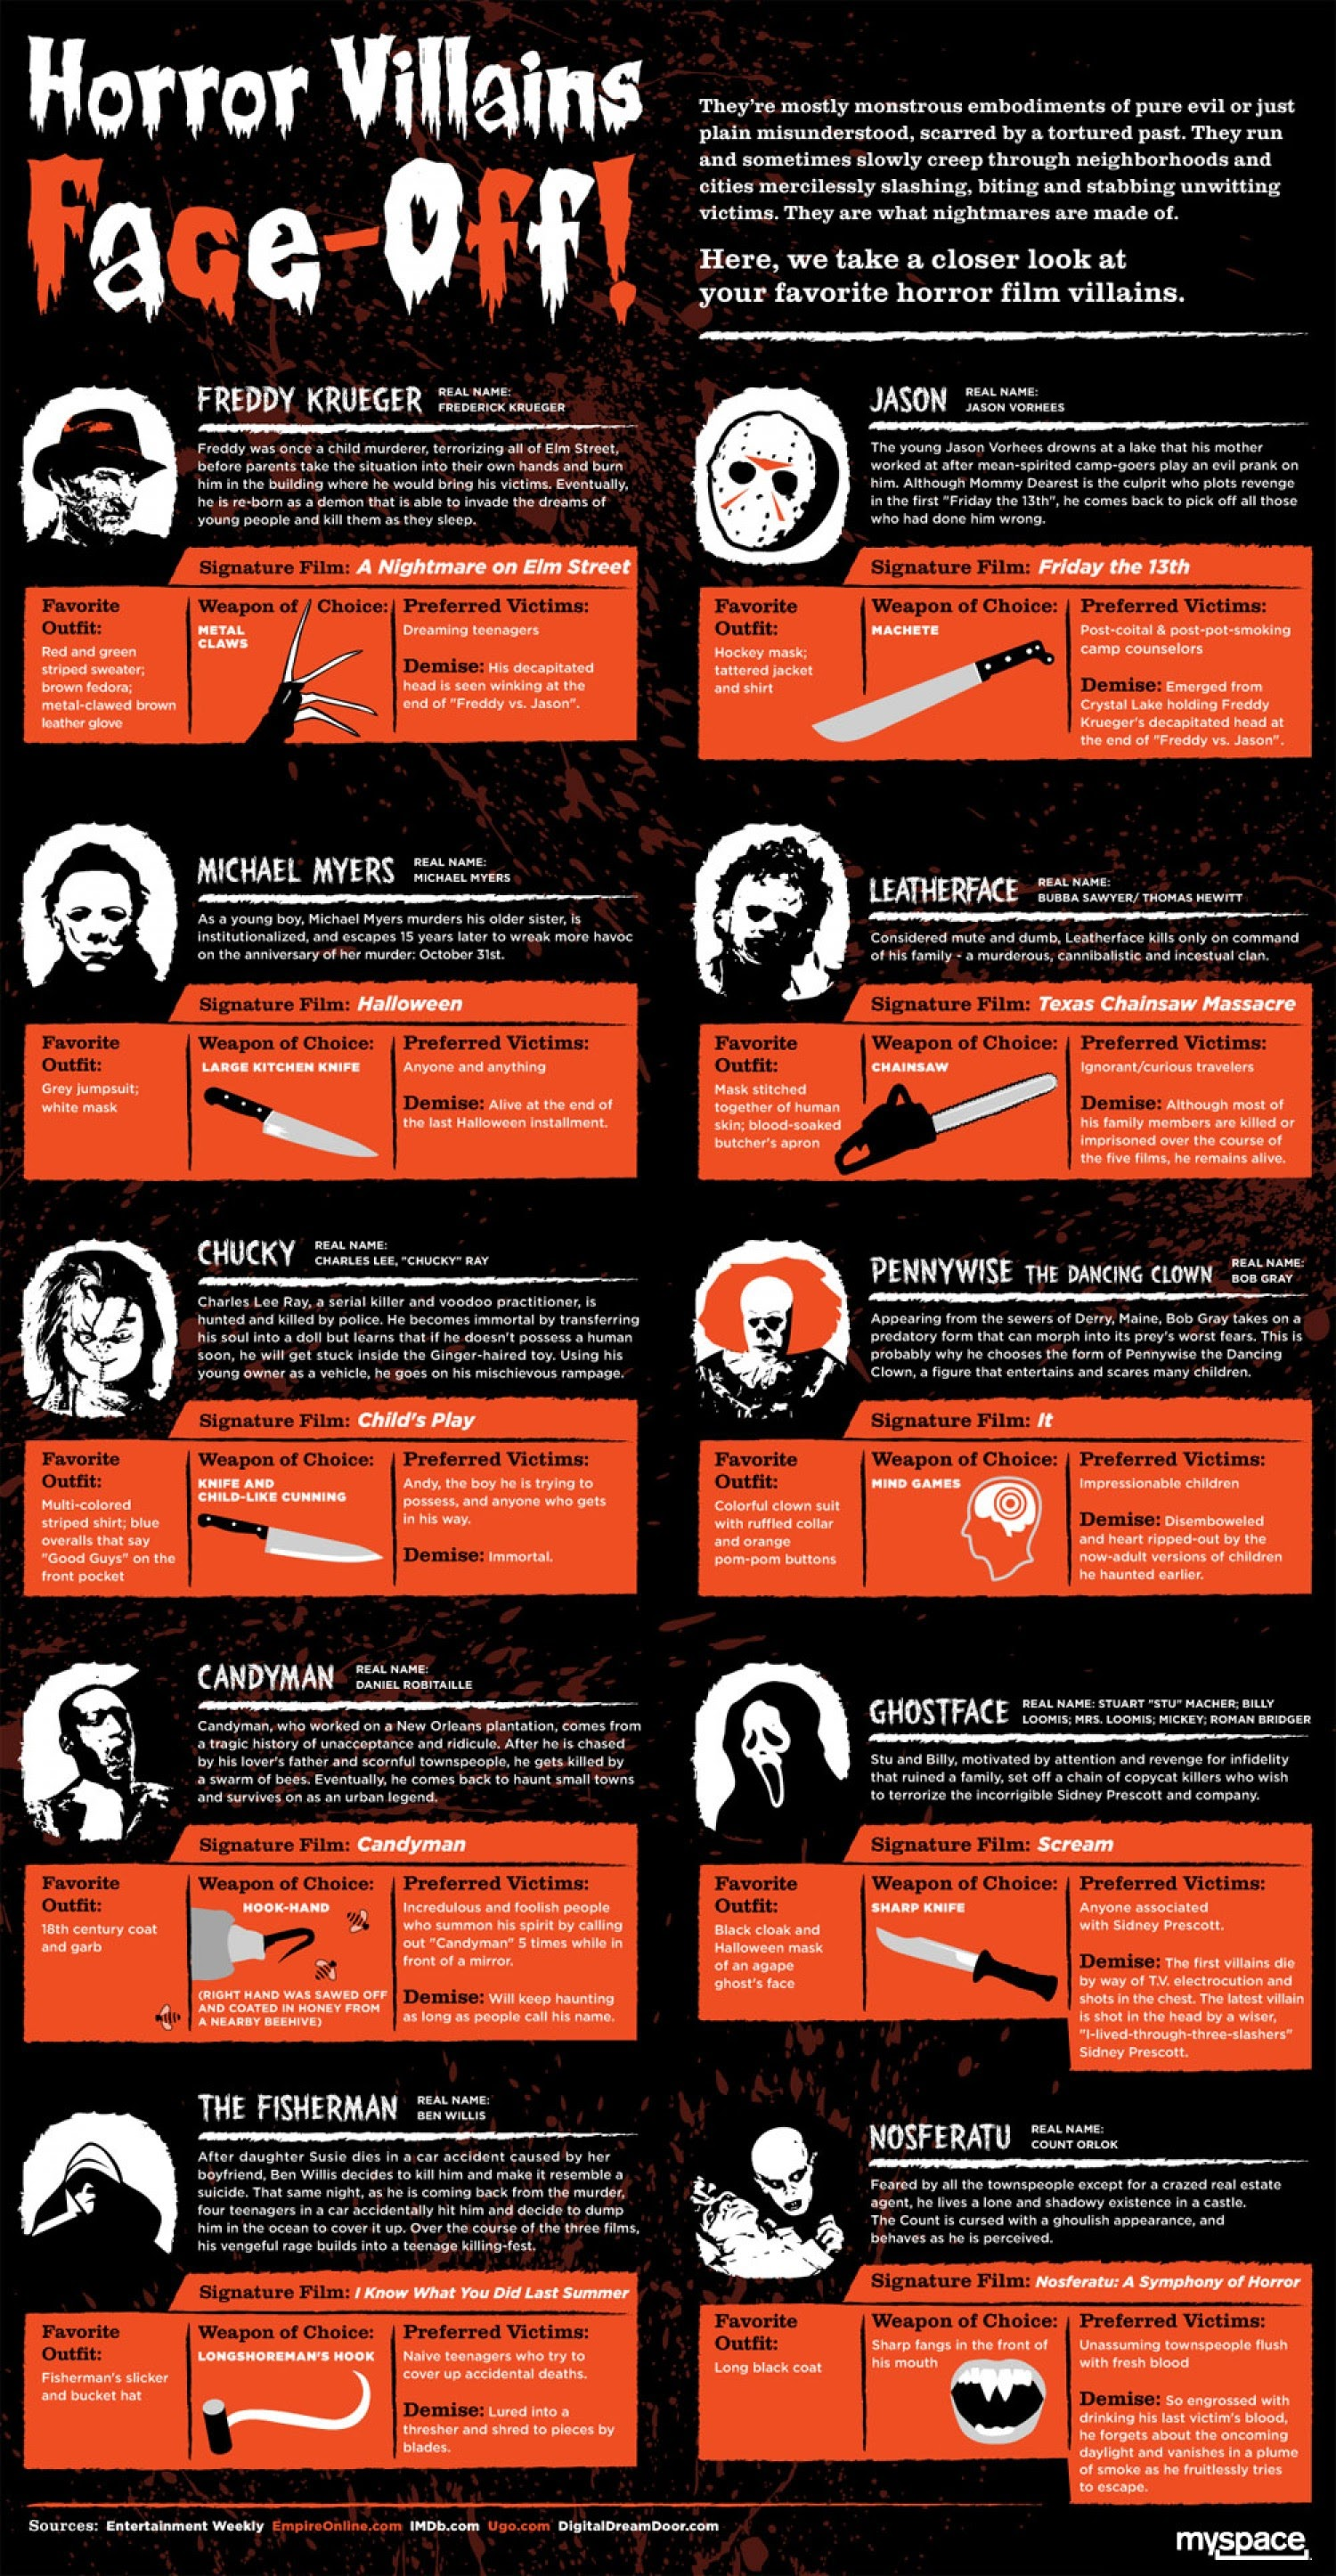 Horror Villains Face-Off #infographic